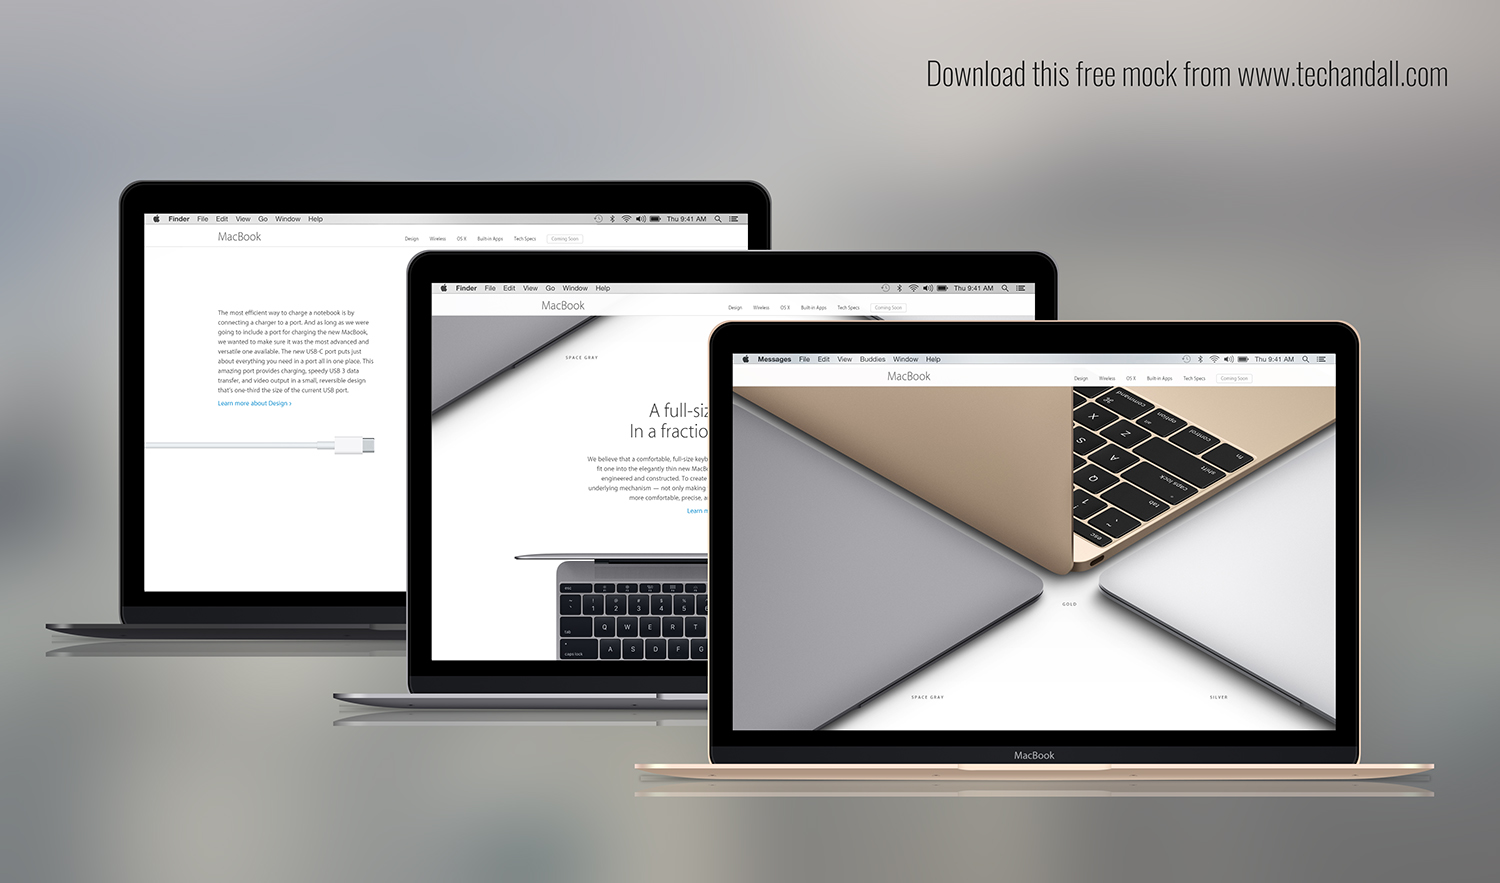 The New MacBook Mockup – Welcome to Tech & ALL